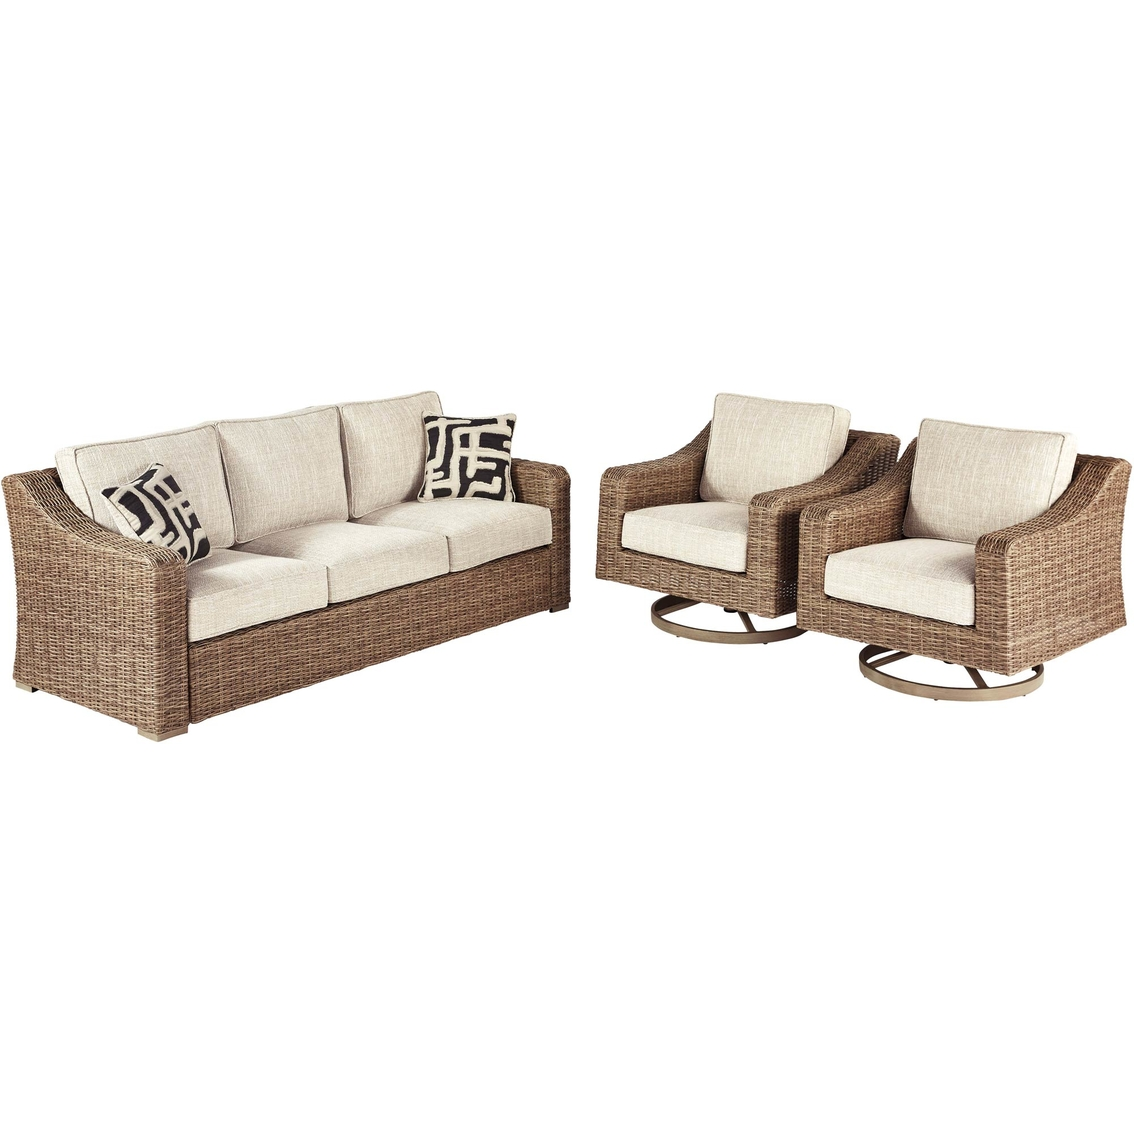 Picture of: Ashley Beachcroft Sofa And Two Swivel Lounge Chairs Set Patio Sets Patio Garden Garage Shop The Exchange